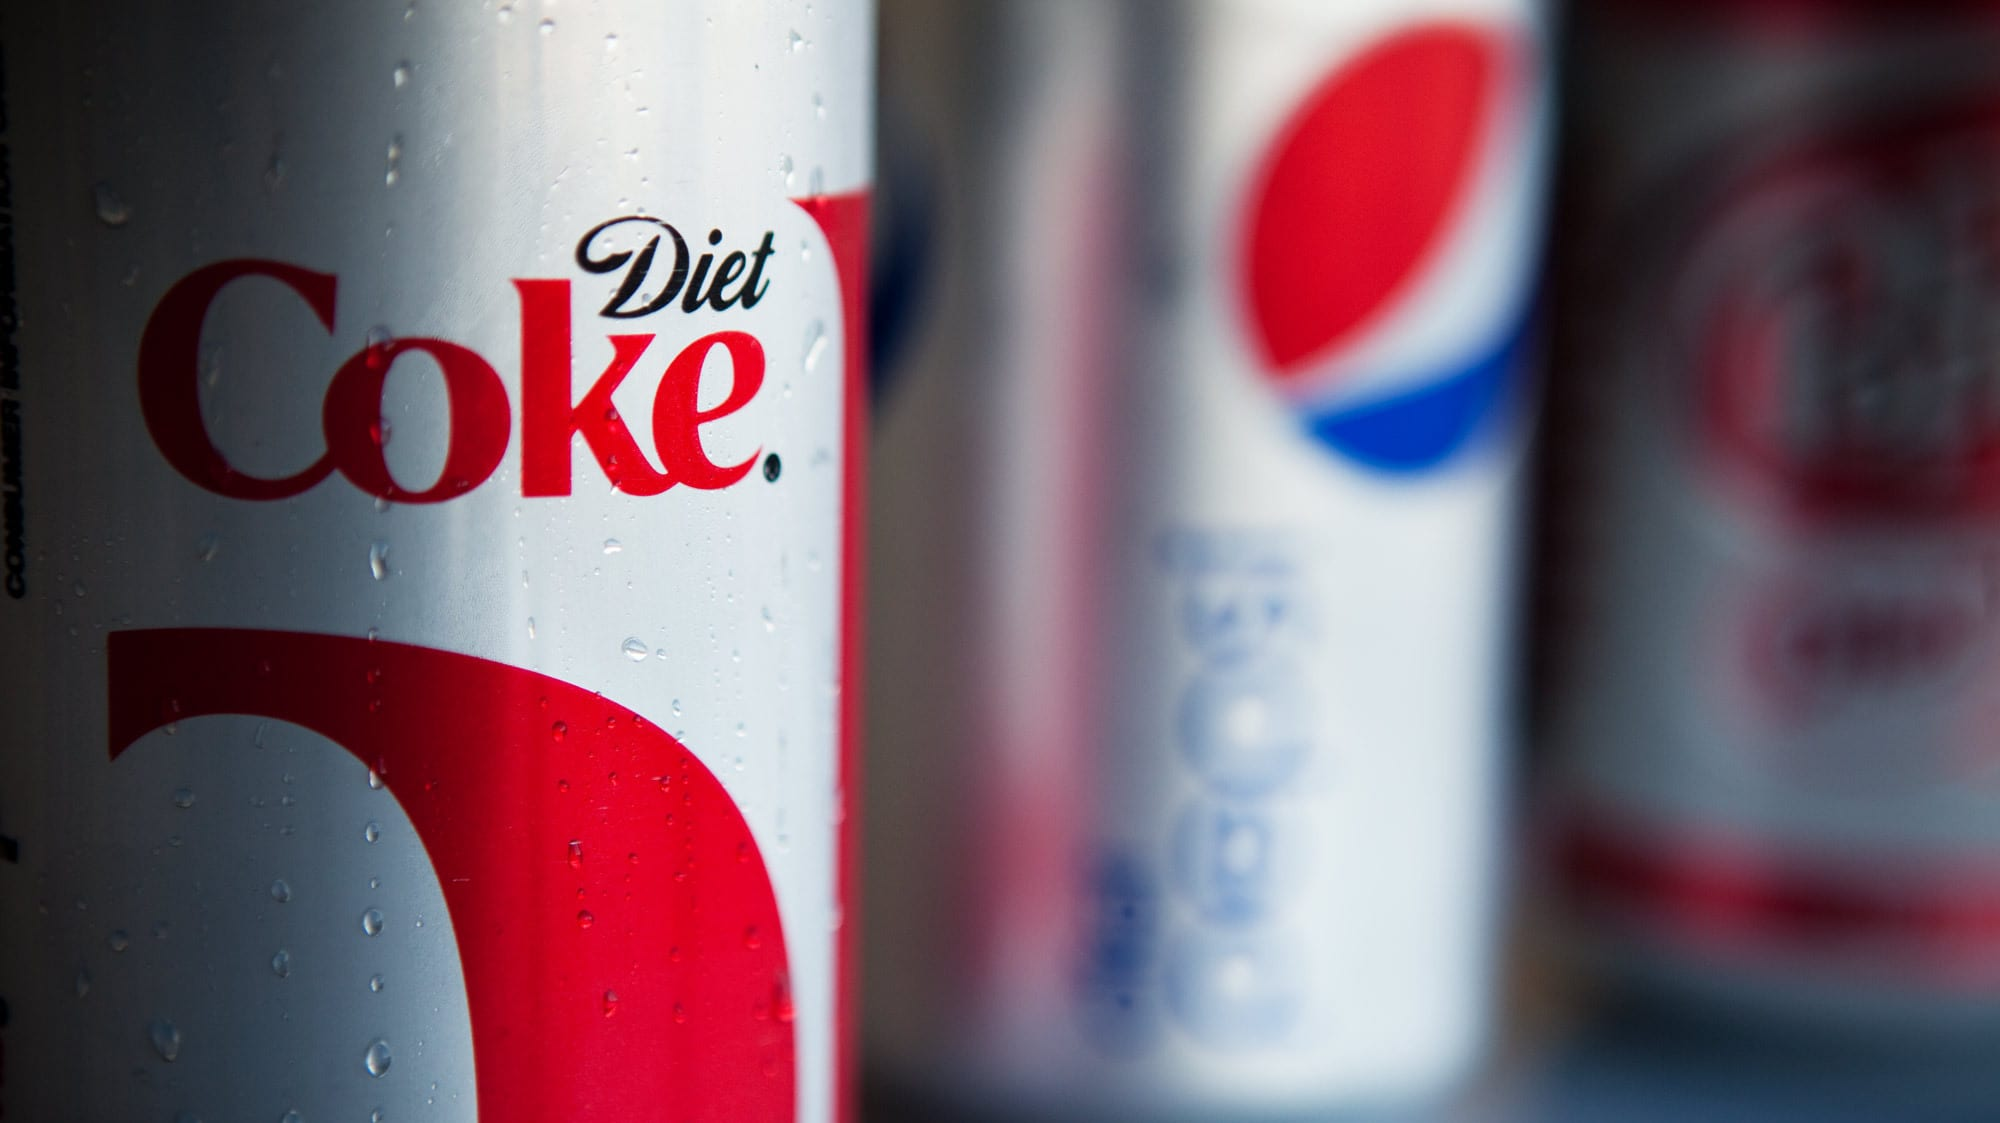 Diet drinks assist in weight loss as study confirms